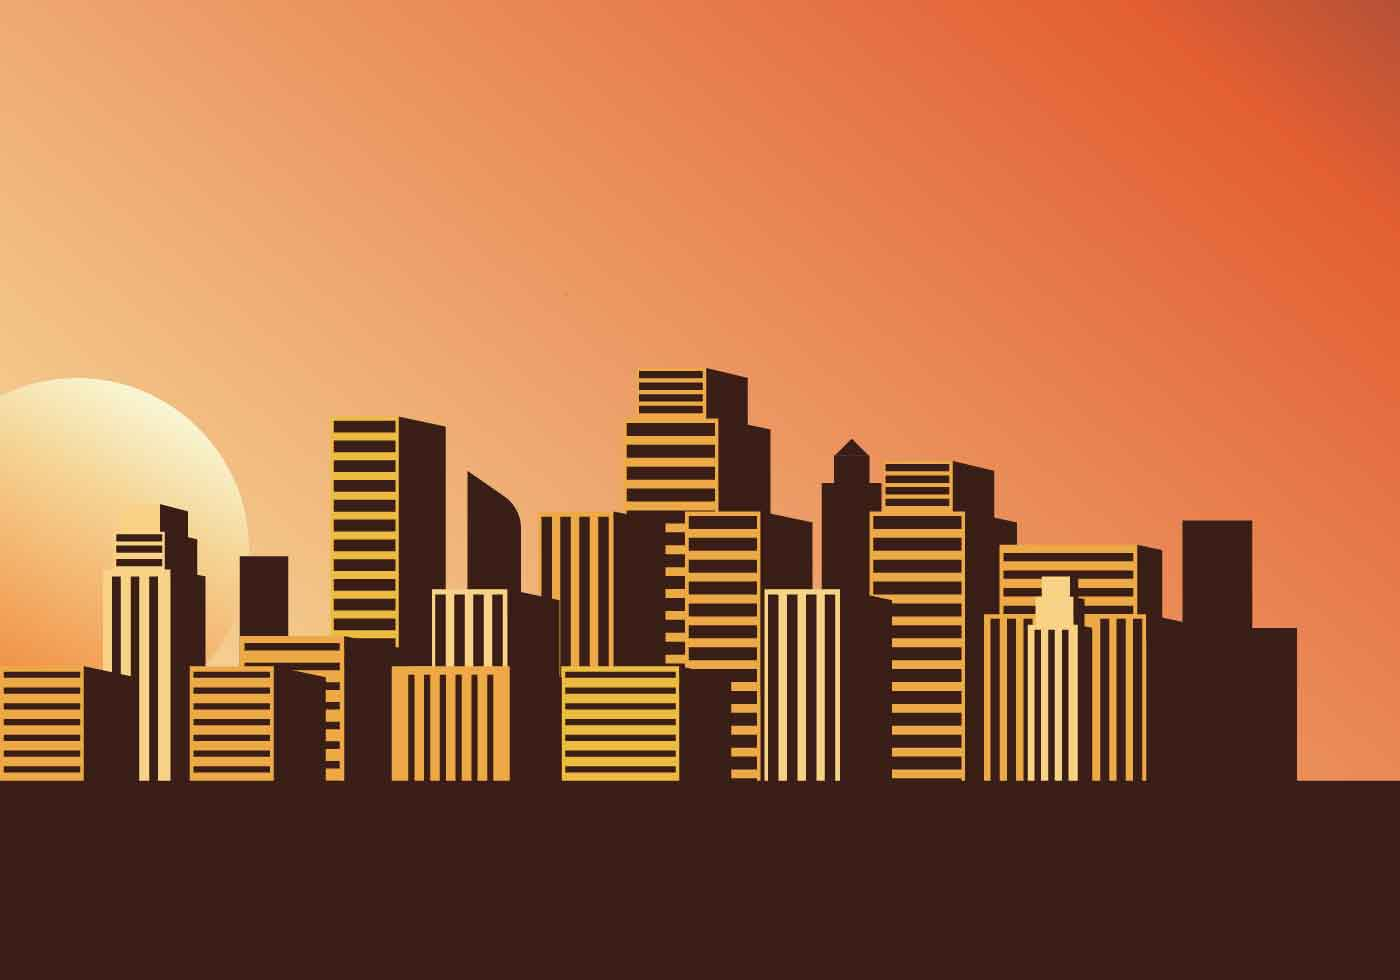 Cityscape Sunset Vector Illustration Download Free Vector Art Stock Graphics Amp Images